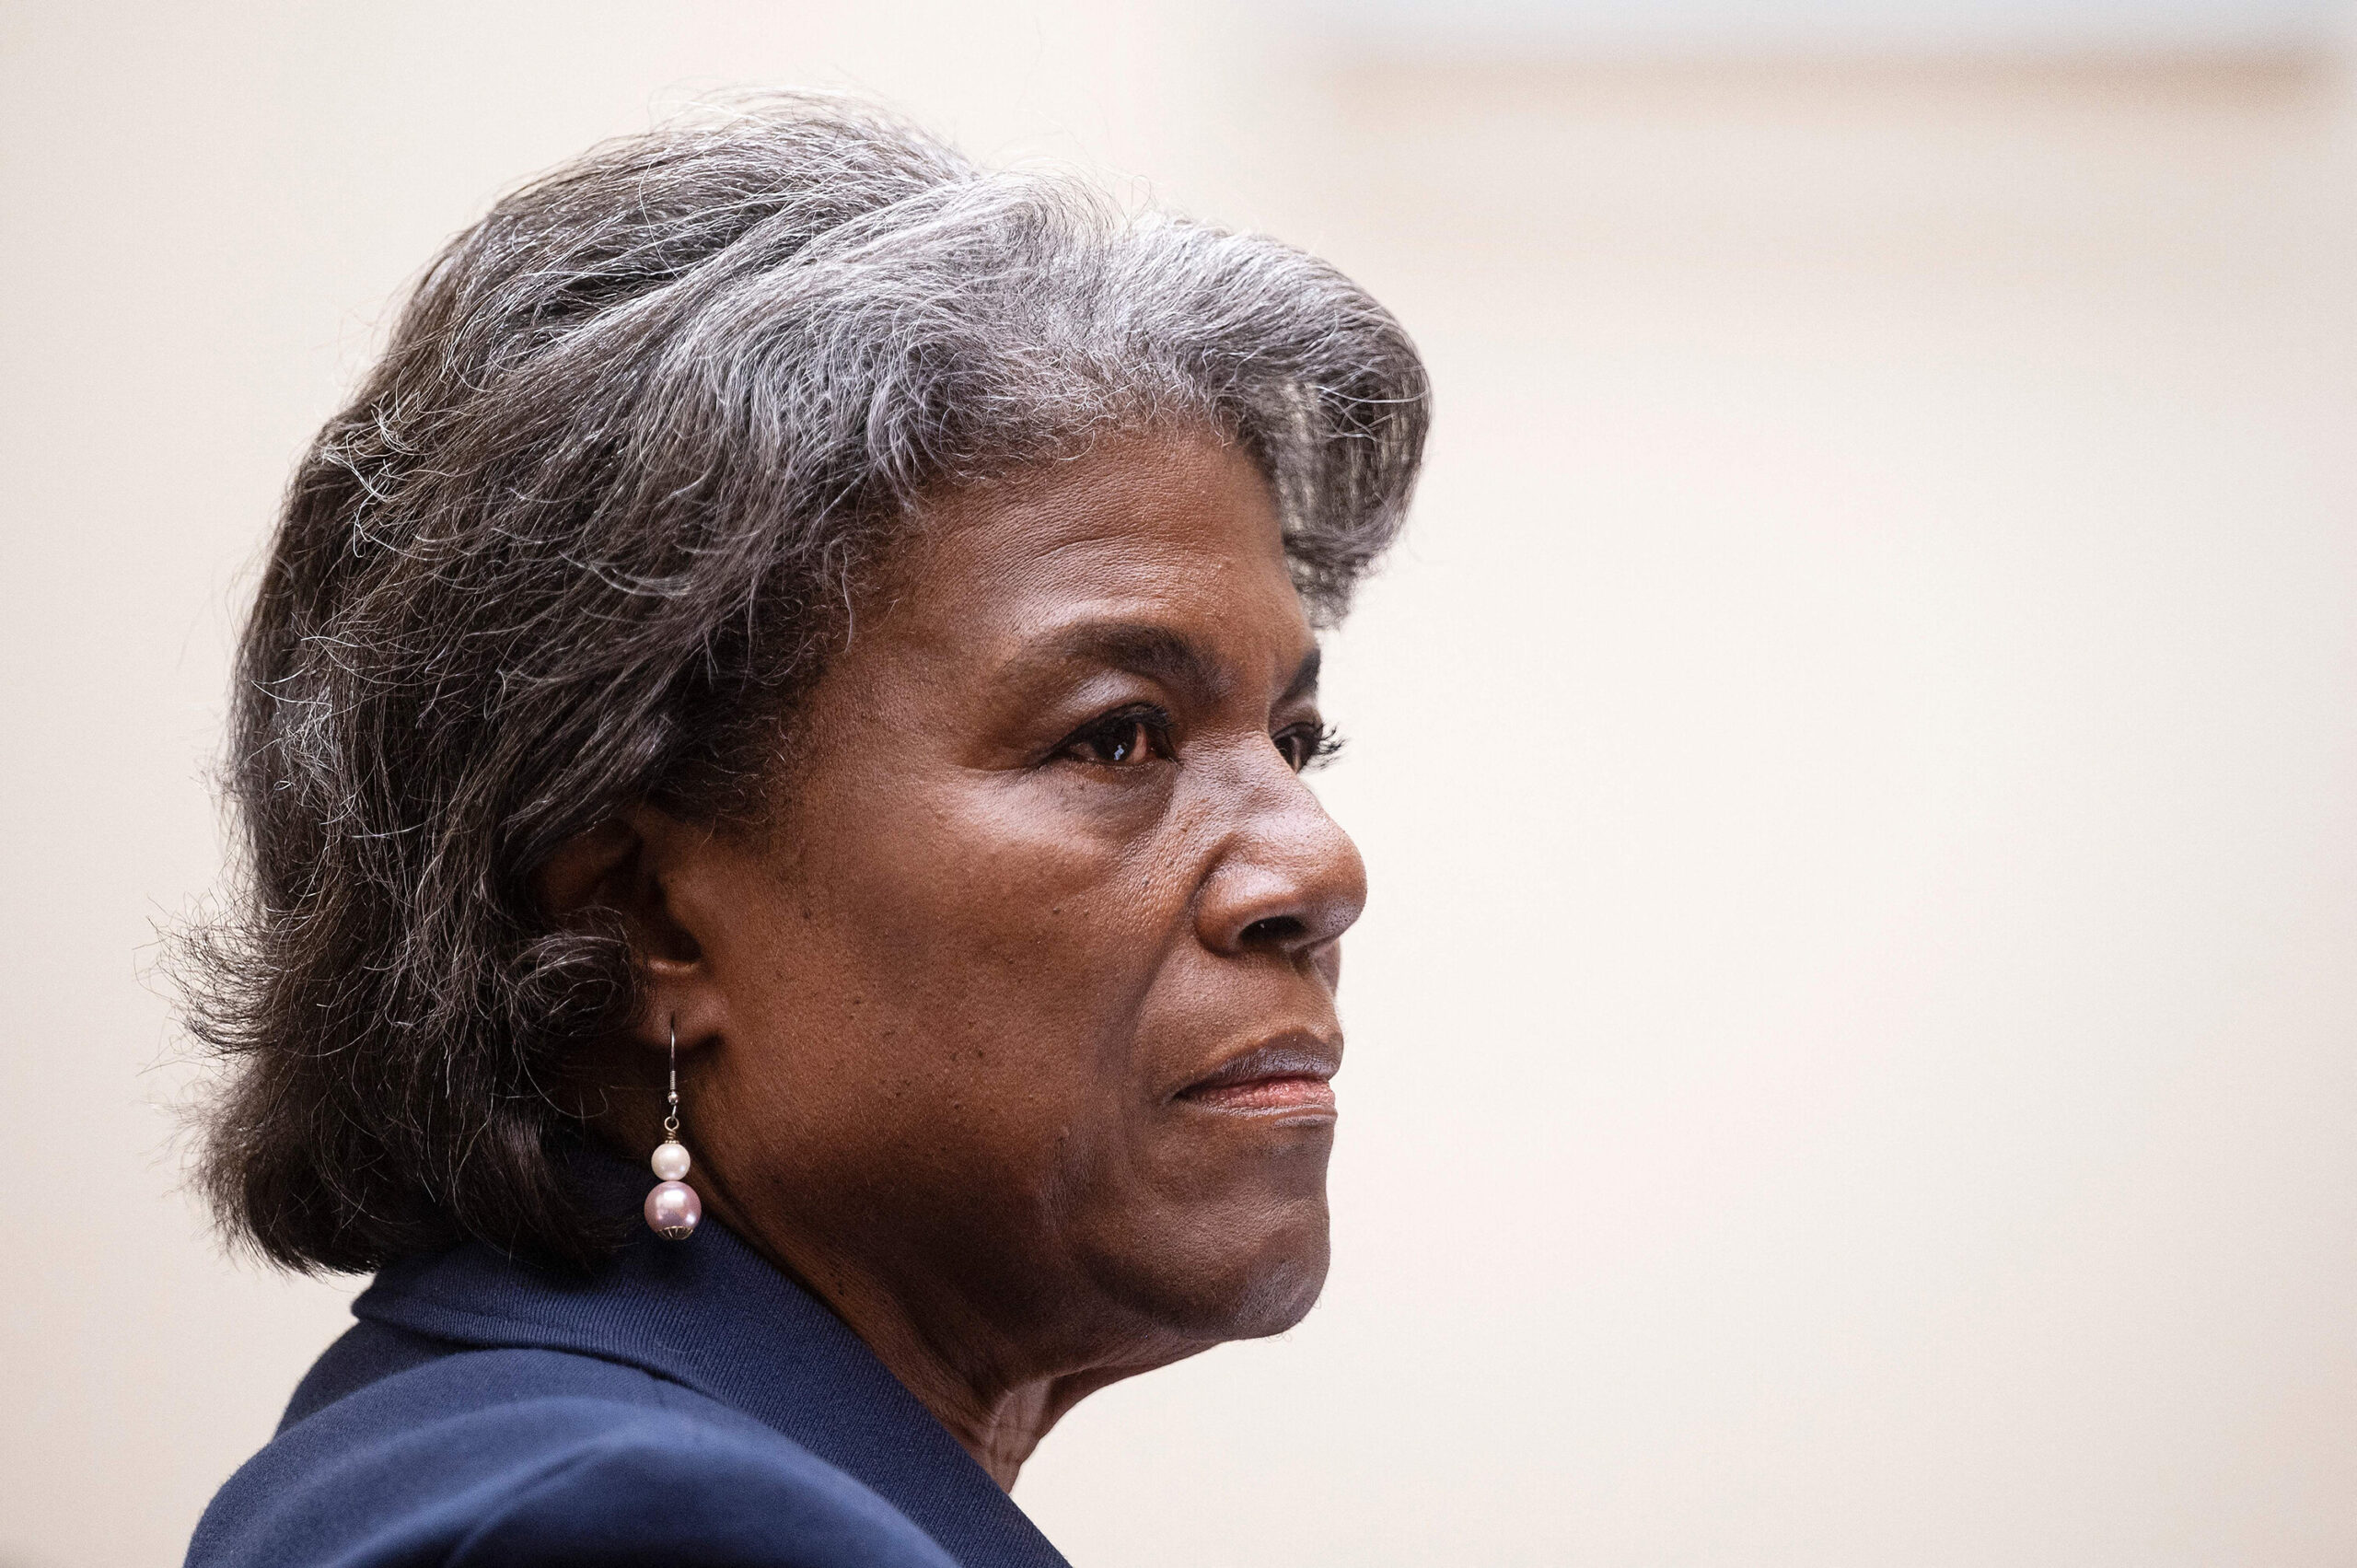 <i>Jim Watson/AFP/Getty Images</i><br/>The United States is officially a member of the controversial United Nations Human Rights Council again. US Ambassador to the United Nations Linda Thomas-Greenfield is shown here on Capitol Hill in Washington